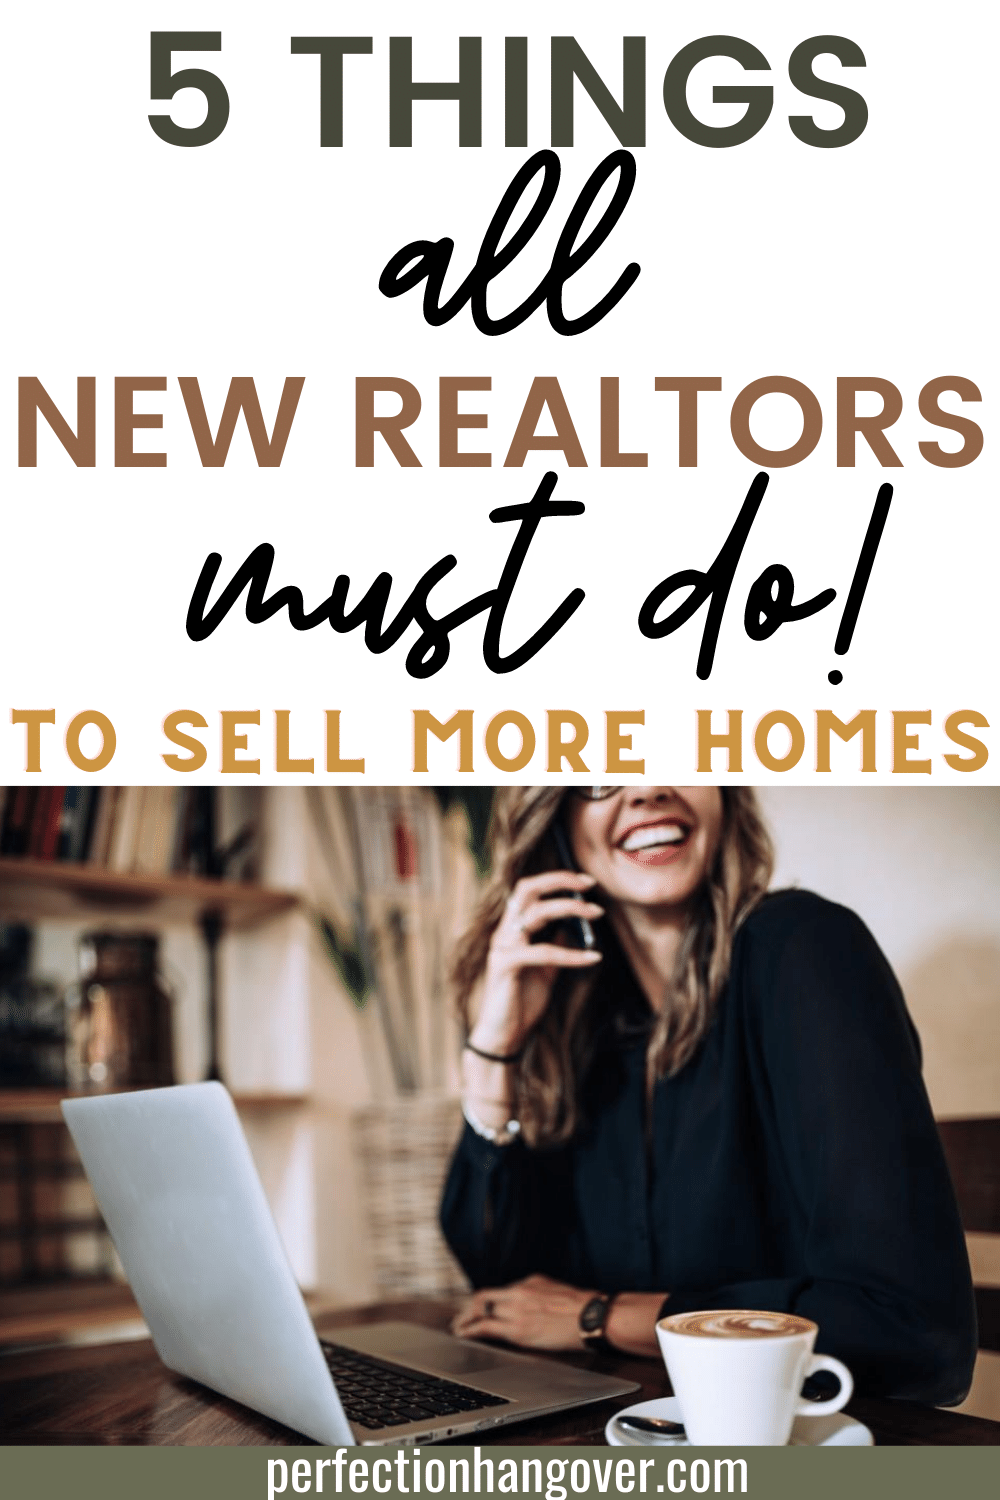 Your first year as a Realtor is pivotal to your real estate career. Here's how to dominate the housing market as an inexperienced newbie. #realtortips #realestatetips #homeselling #realestatemarketing #marketing #womeninbusiness #realestatecareer #realtor via @perfectionhangover